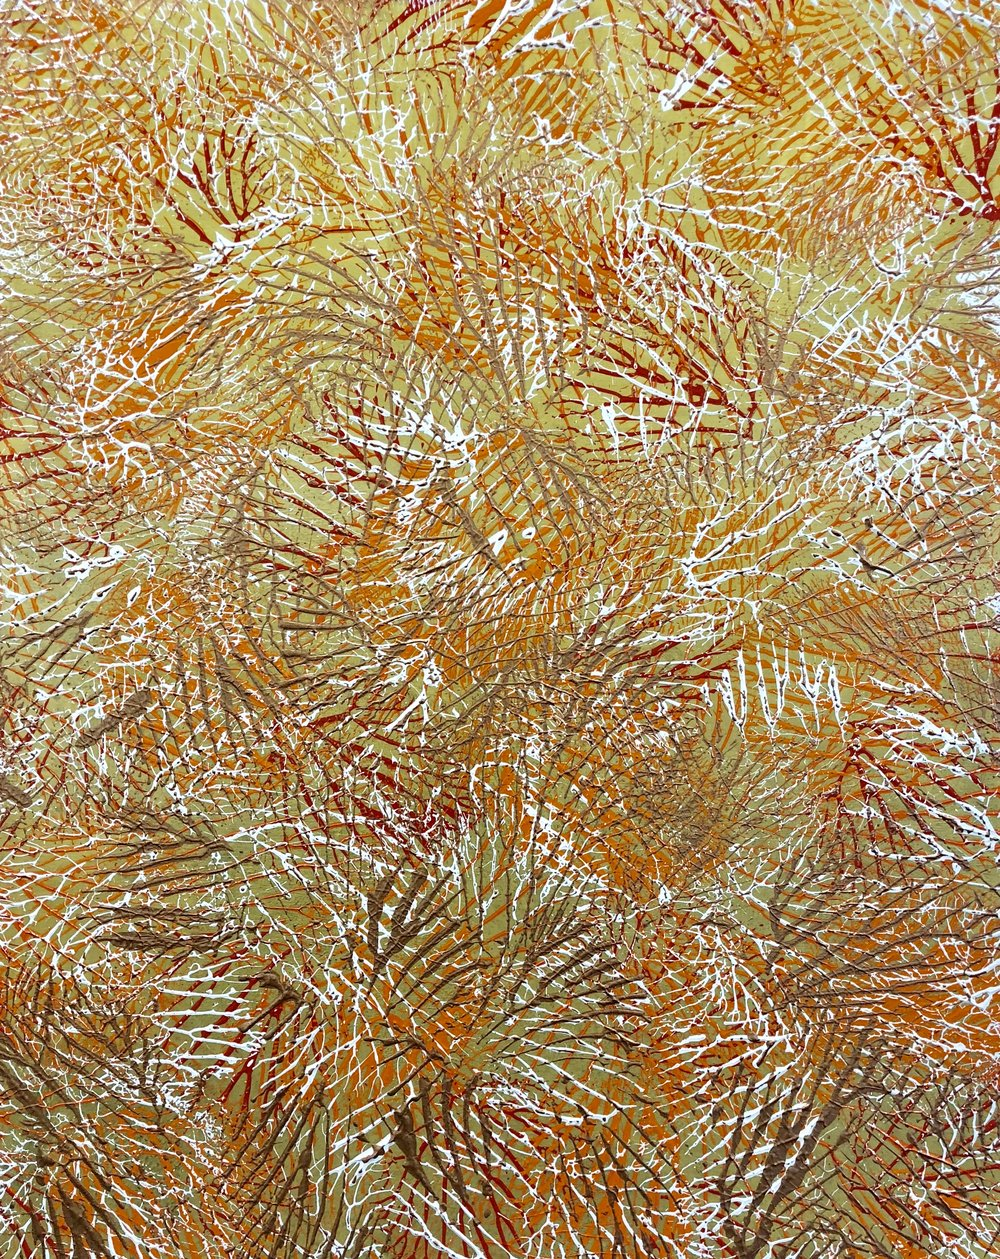 Above: Artwork by   Thierry B.,    Entanglement , 2018 Coral Series, Synthetic Polymer Paint on Linen, 152 x 122cm. Price on Application:   art@thierrybfineart.com